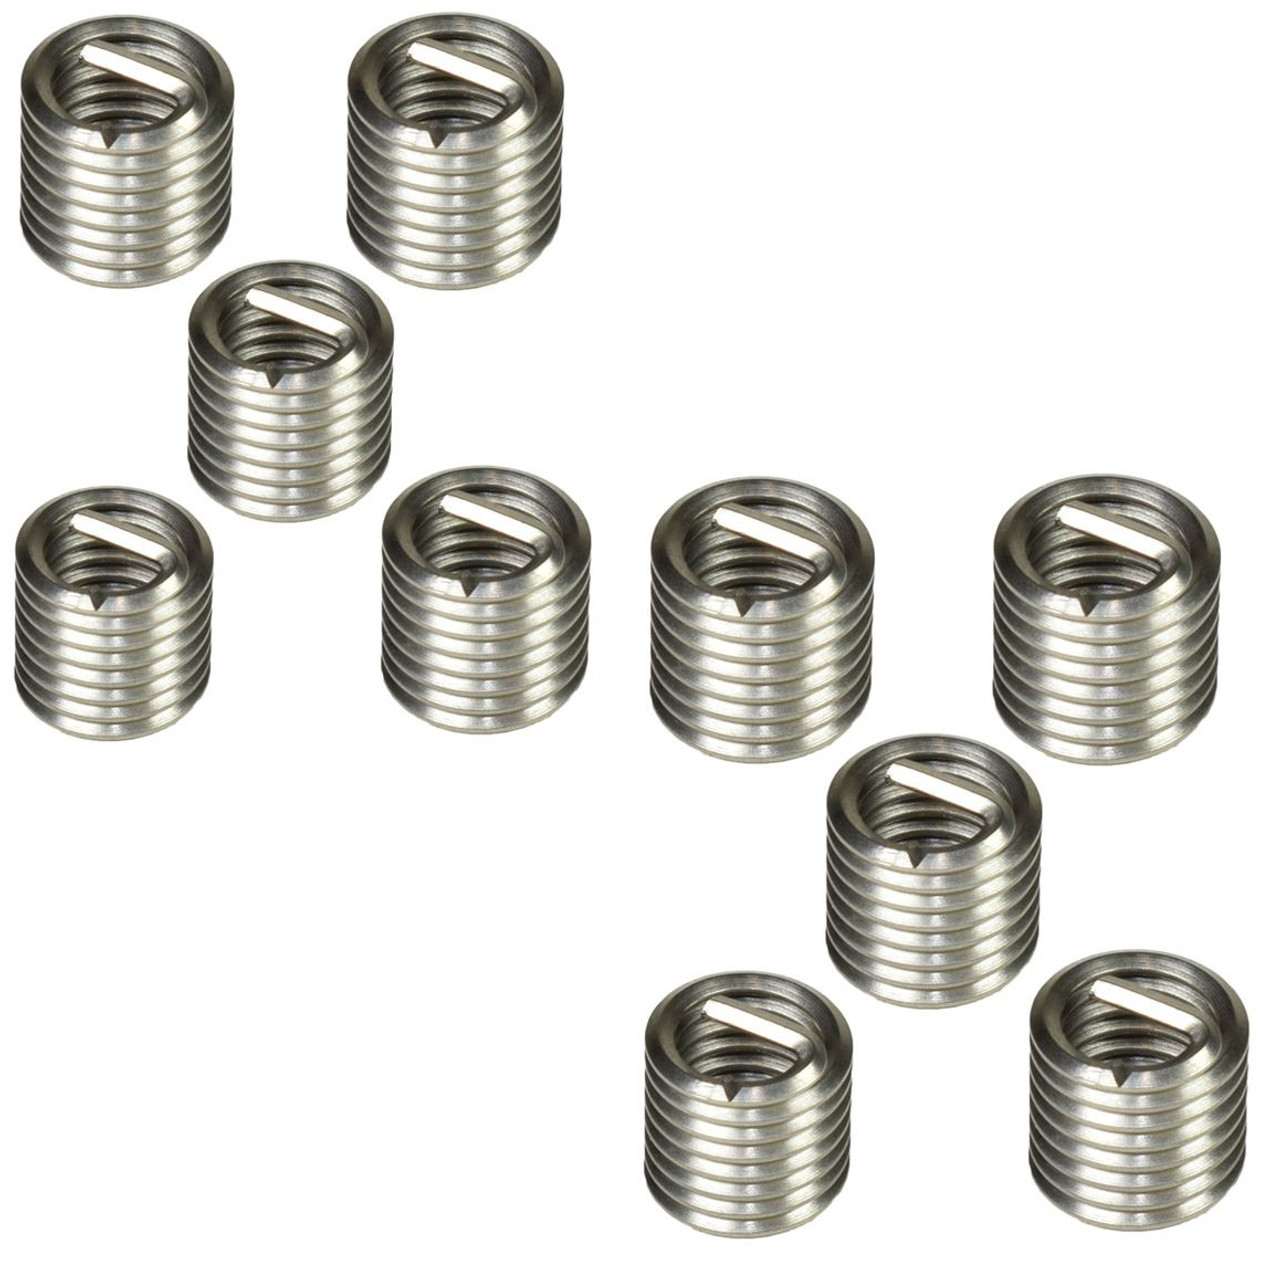 Helicoil Type Thread Repair Inserts 5//16 UNC x 1.5D 10pc Wire Thread Insert